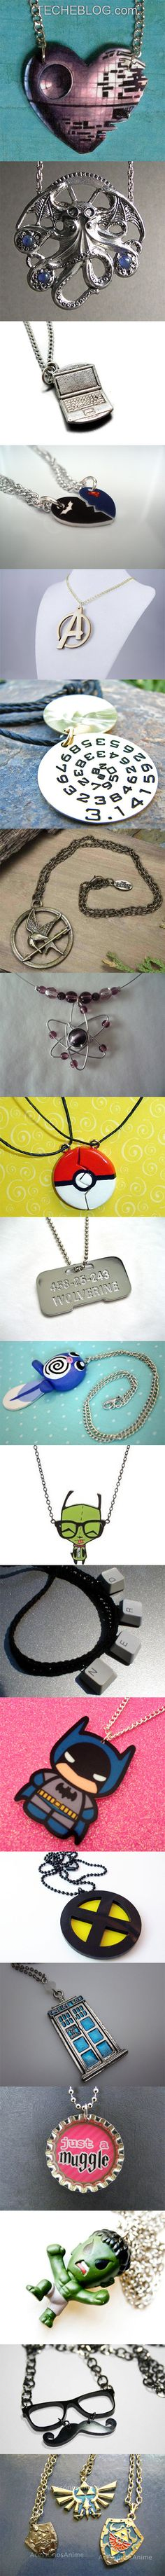 Geek jewelry. Yes please.